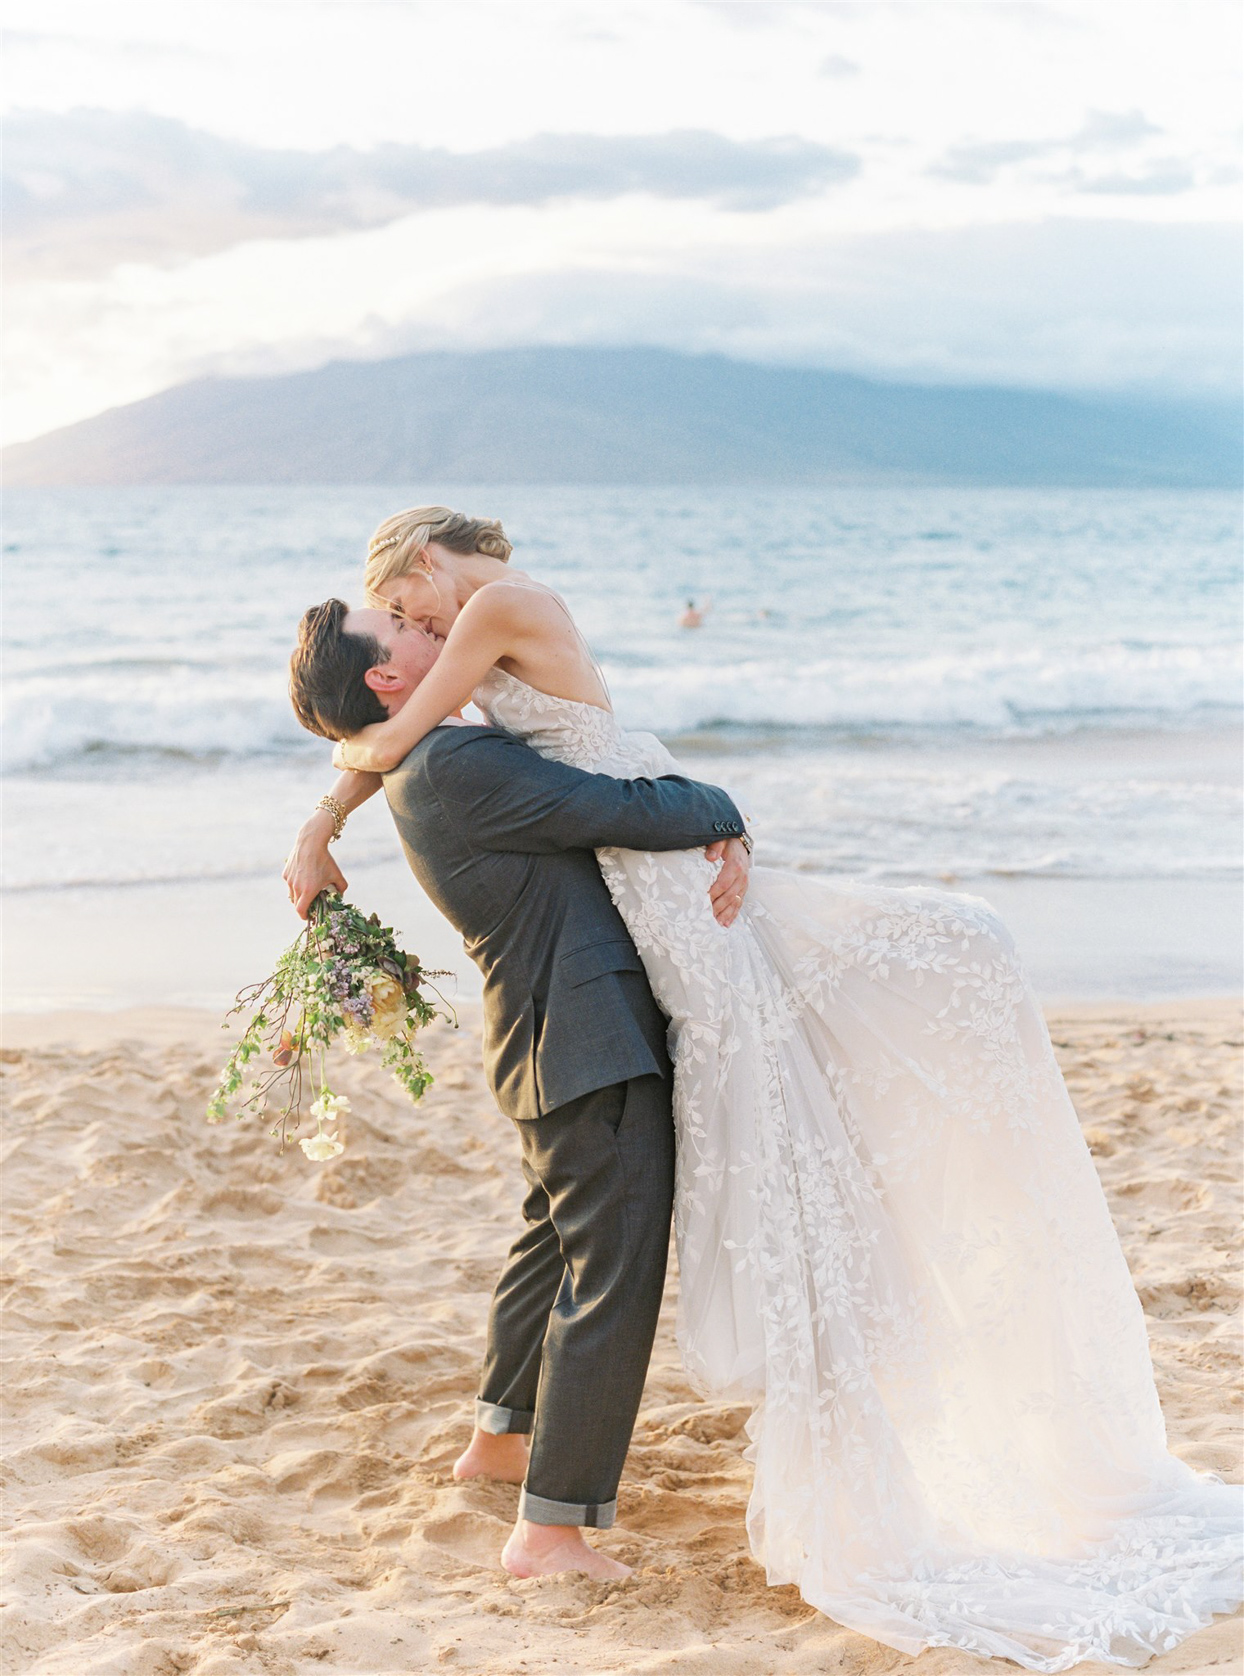 groom picking up bride and kissing her on beach